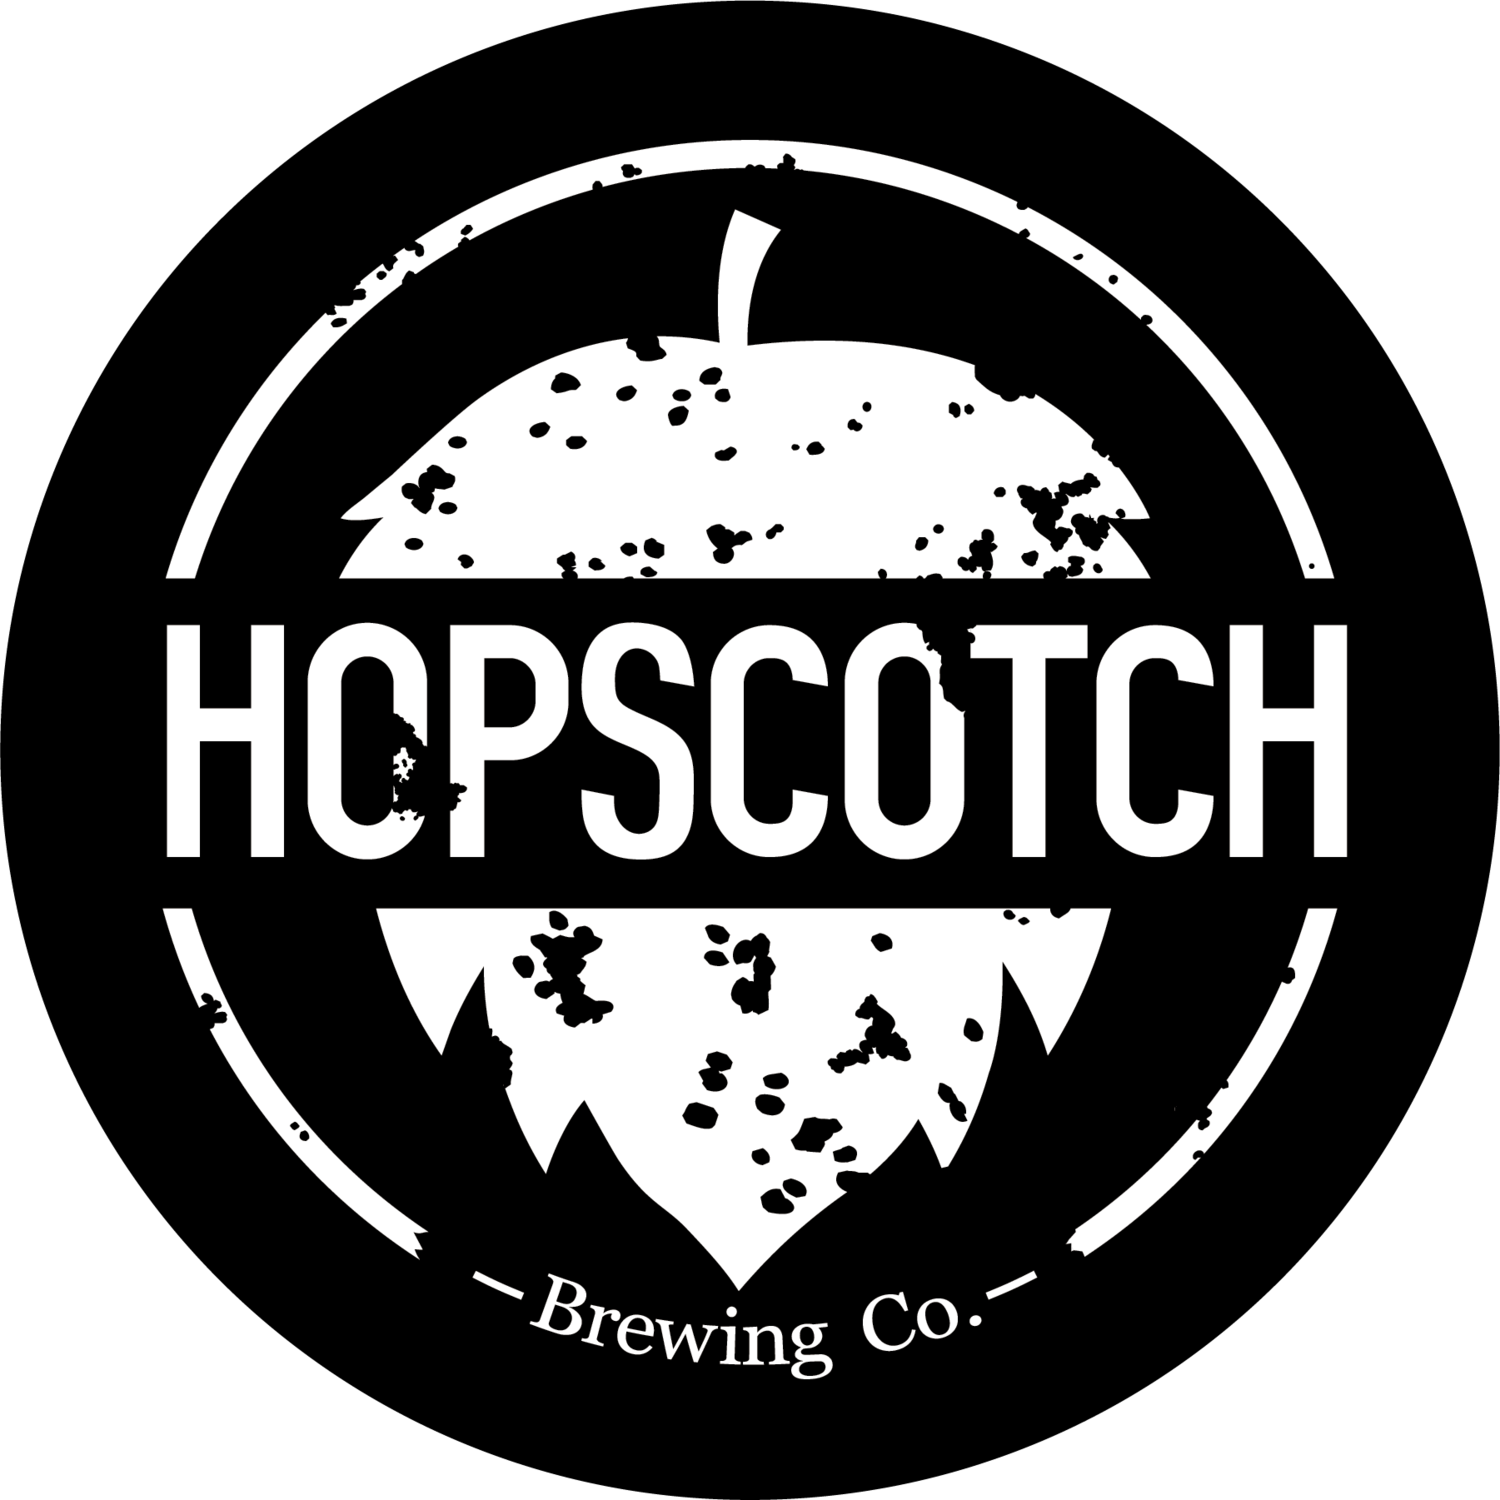 Hopscotch Brewing